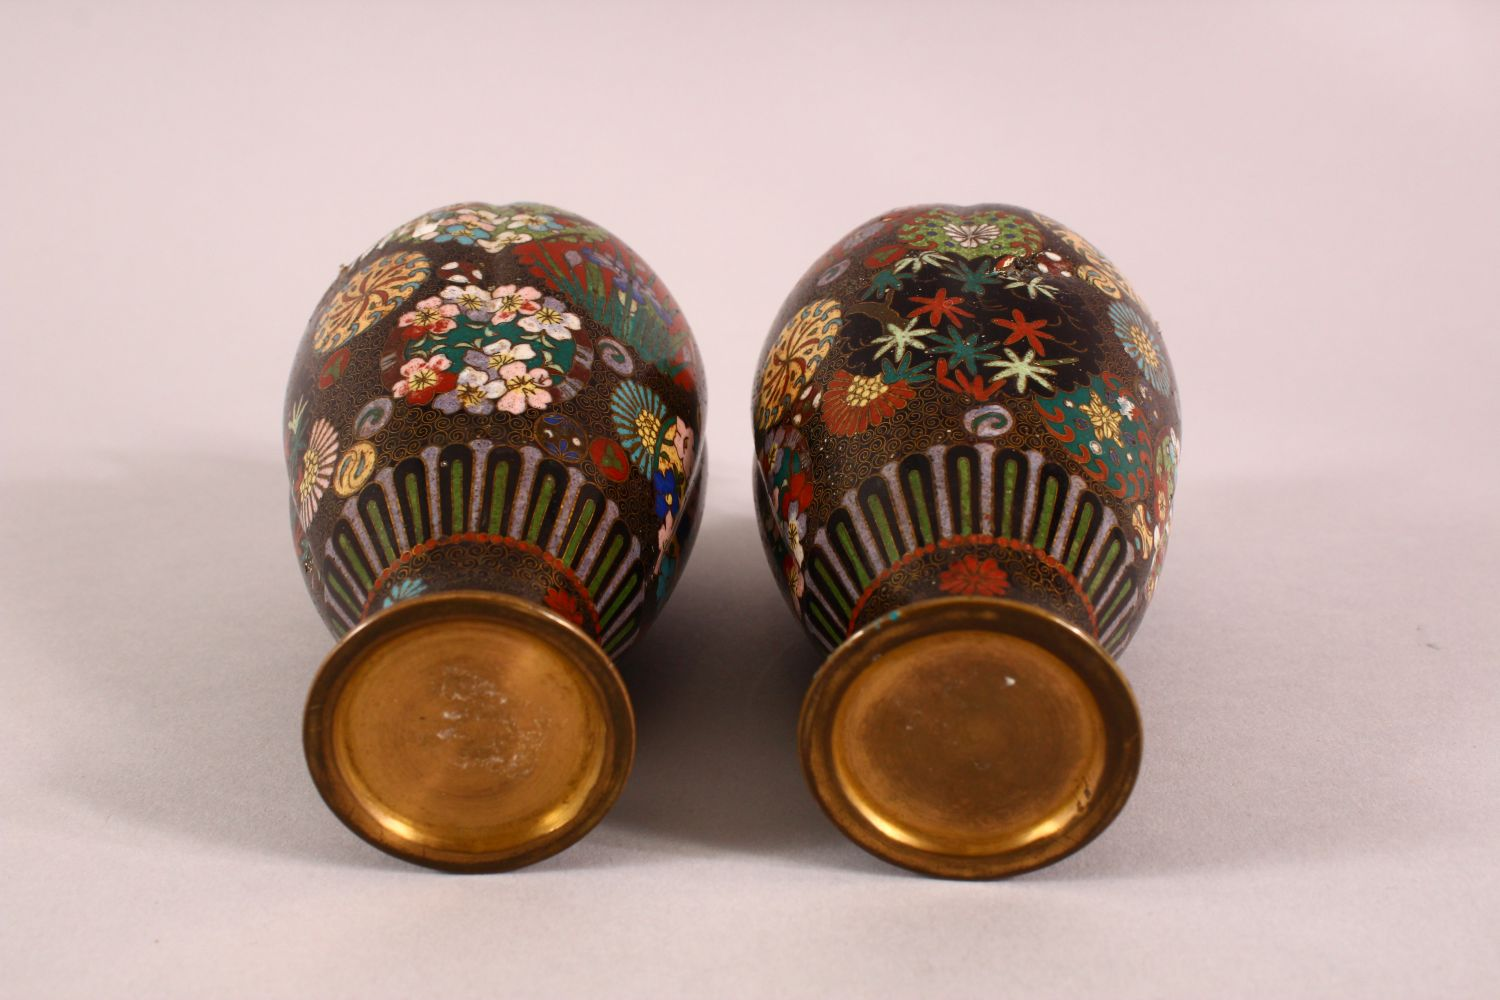 A PAIR OF SMALL CLOISONNE VASES OF RIBBED BALUSTER FORM, decorated with roundels of flowers, 15cm - Image 6 of 6